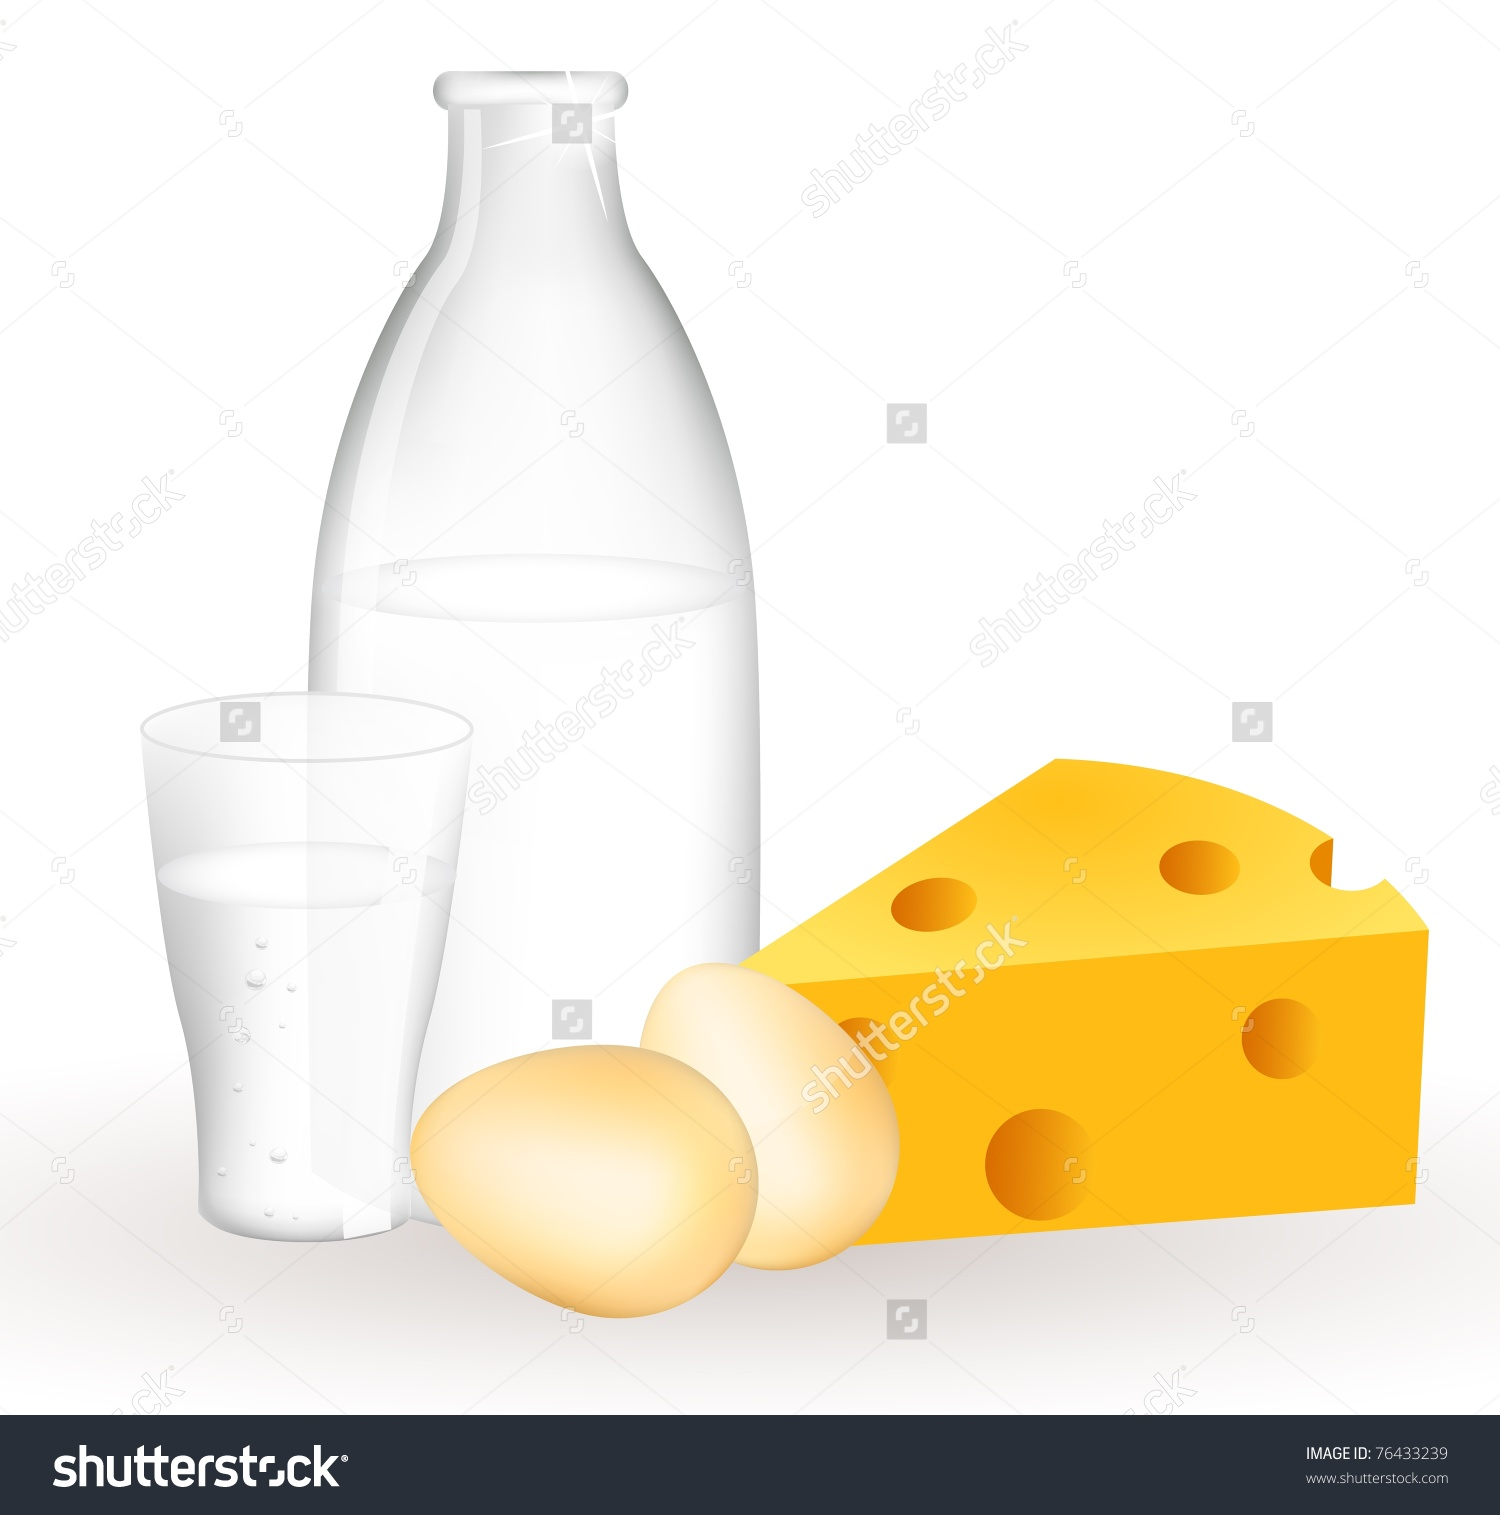 Milk Jug clipart milk egg Eggs Cheese products and and